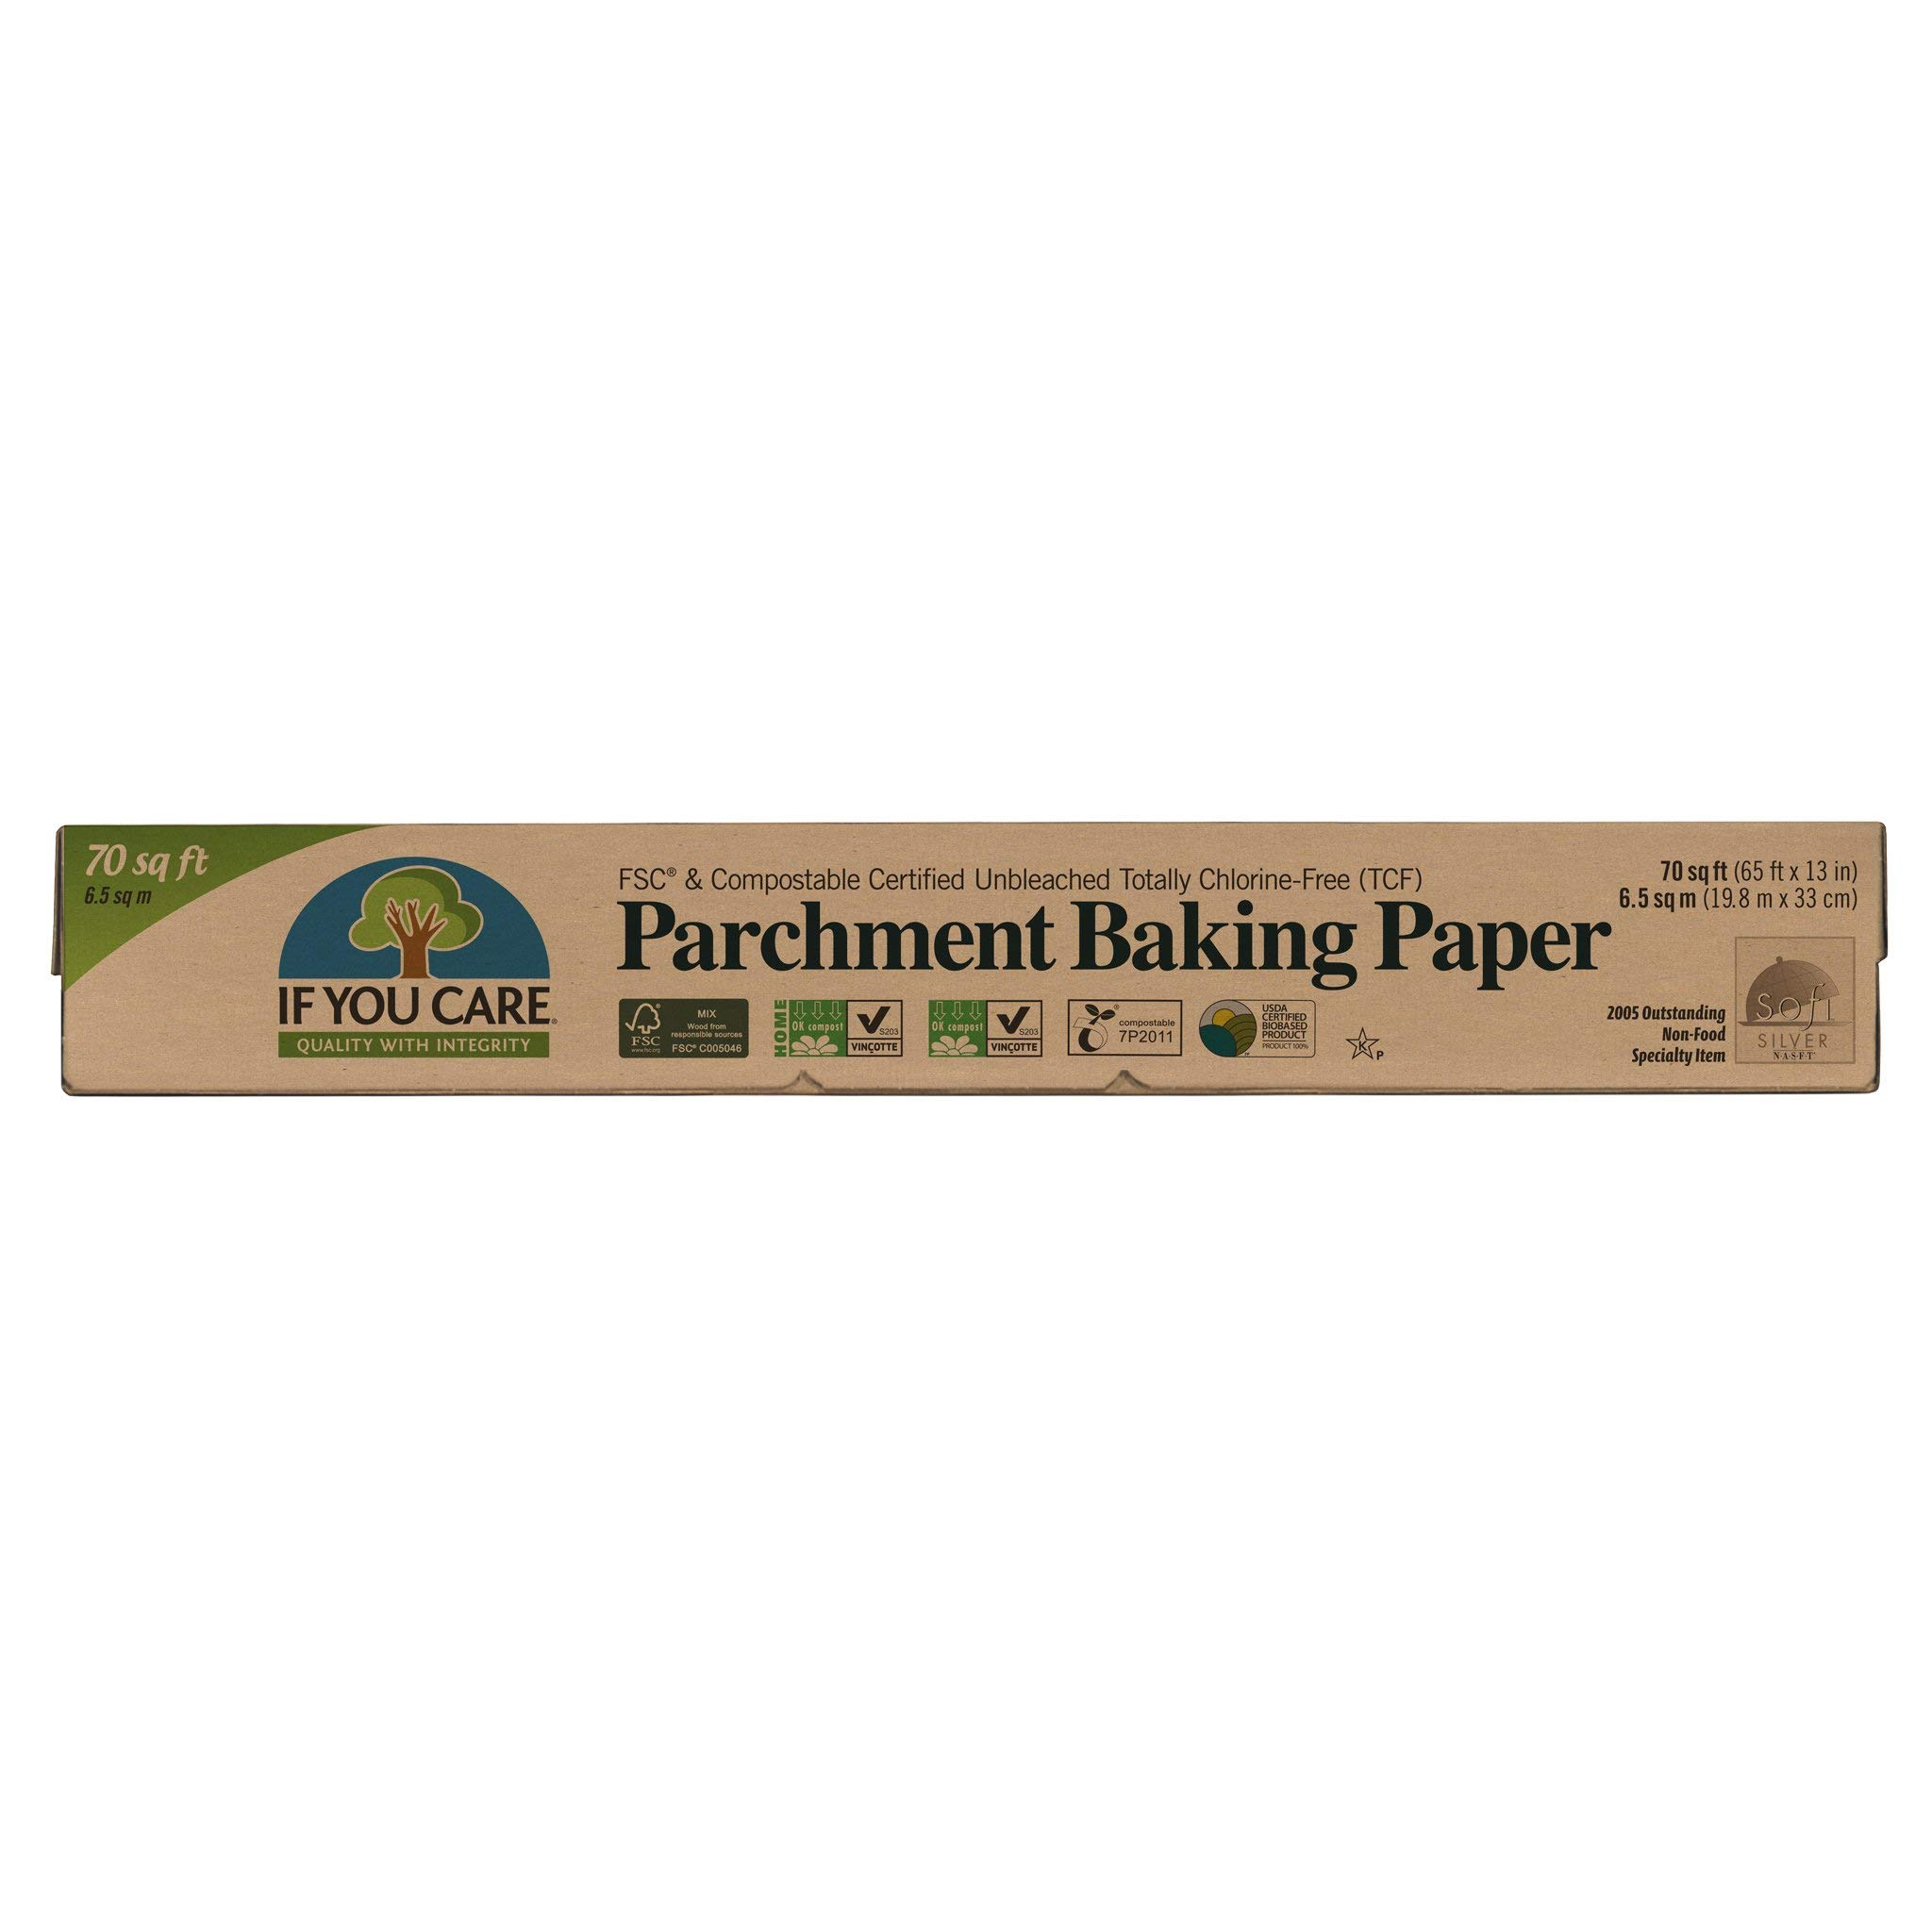 CARE Certified Parchment Baking Paper